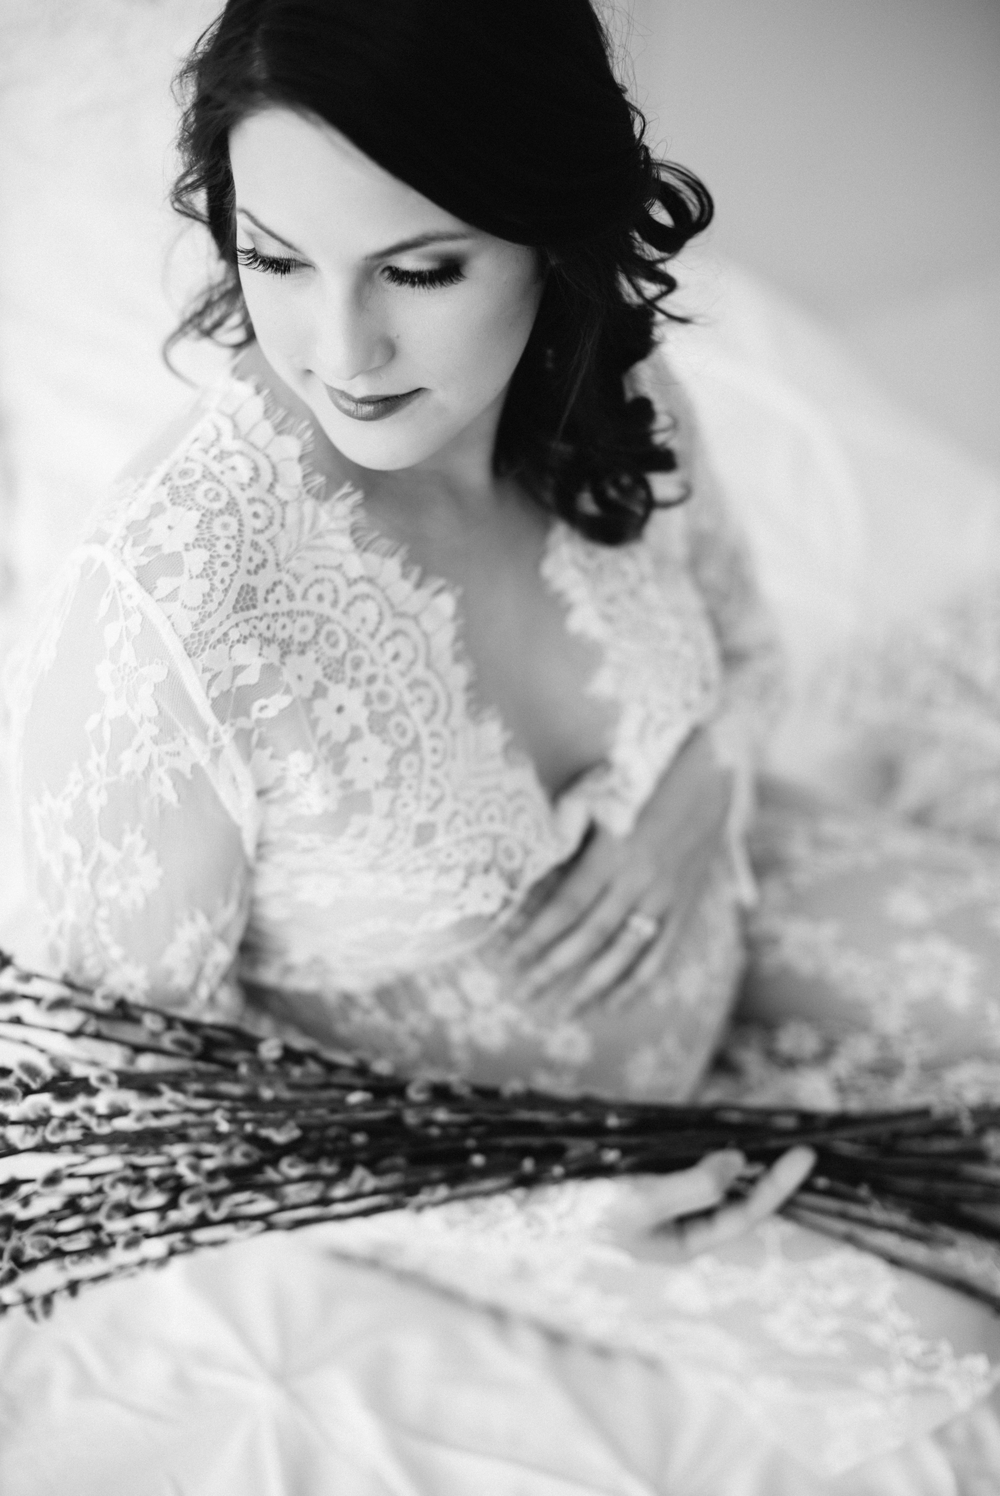 seattle_studio_maternity_boudoir_photographer 13.jpg